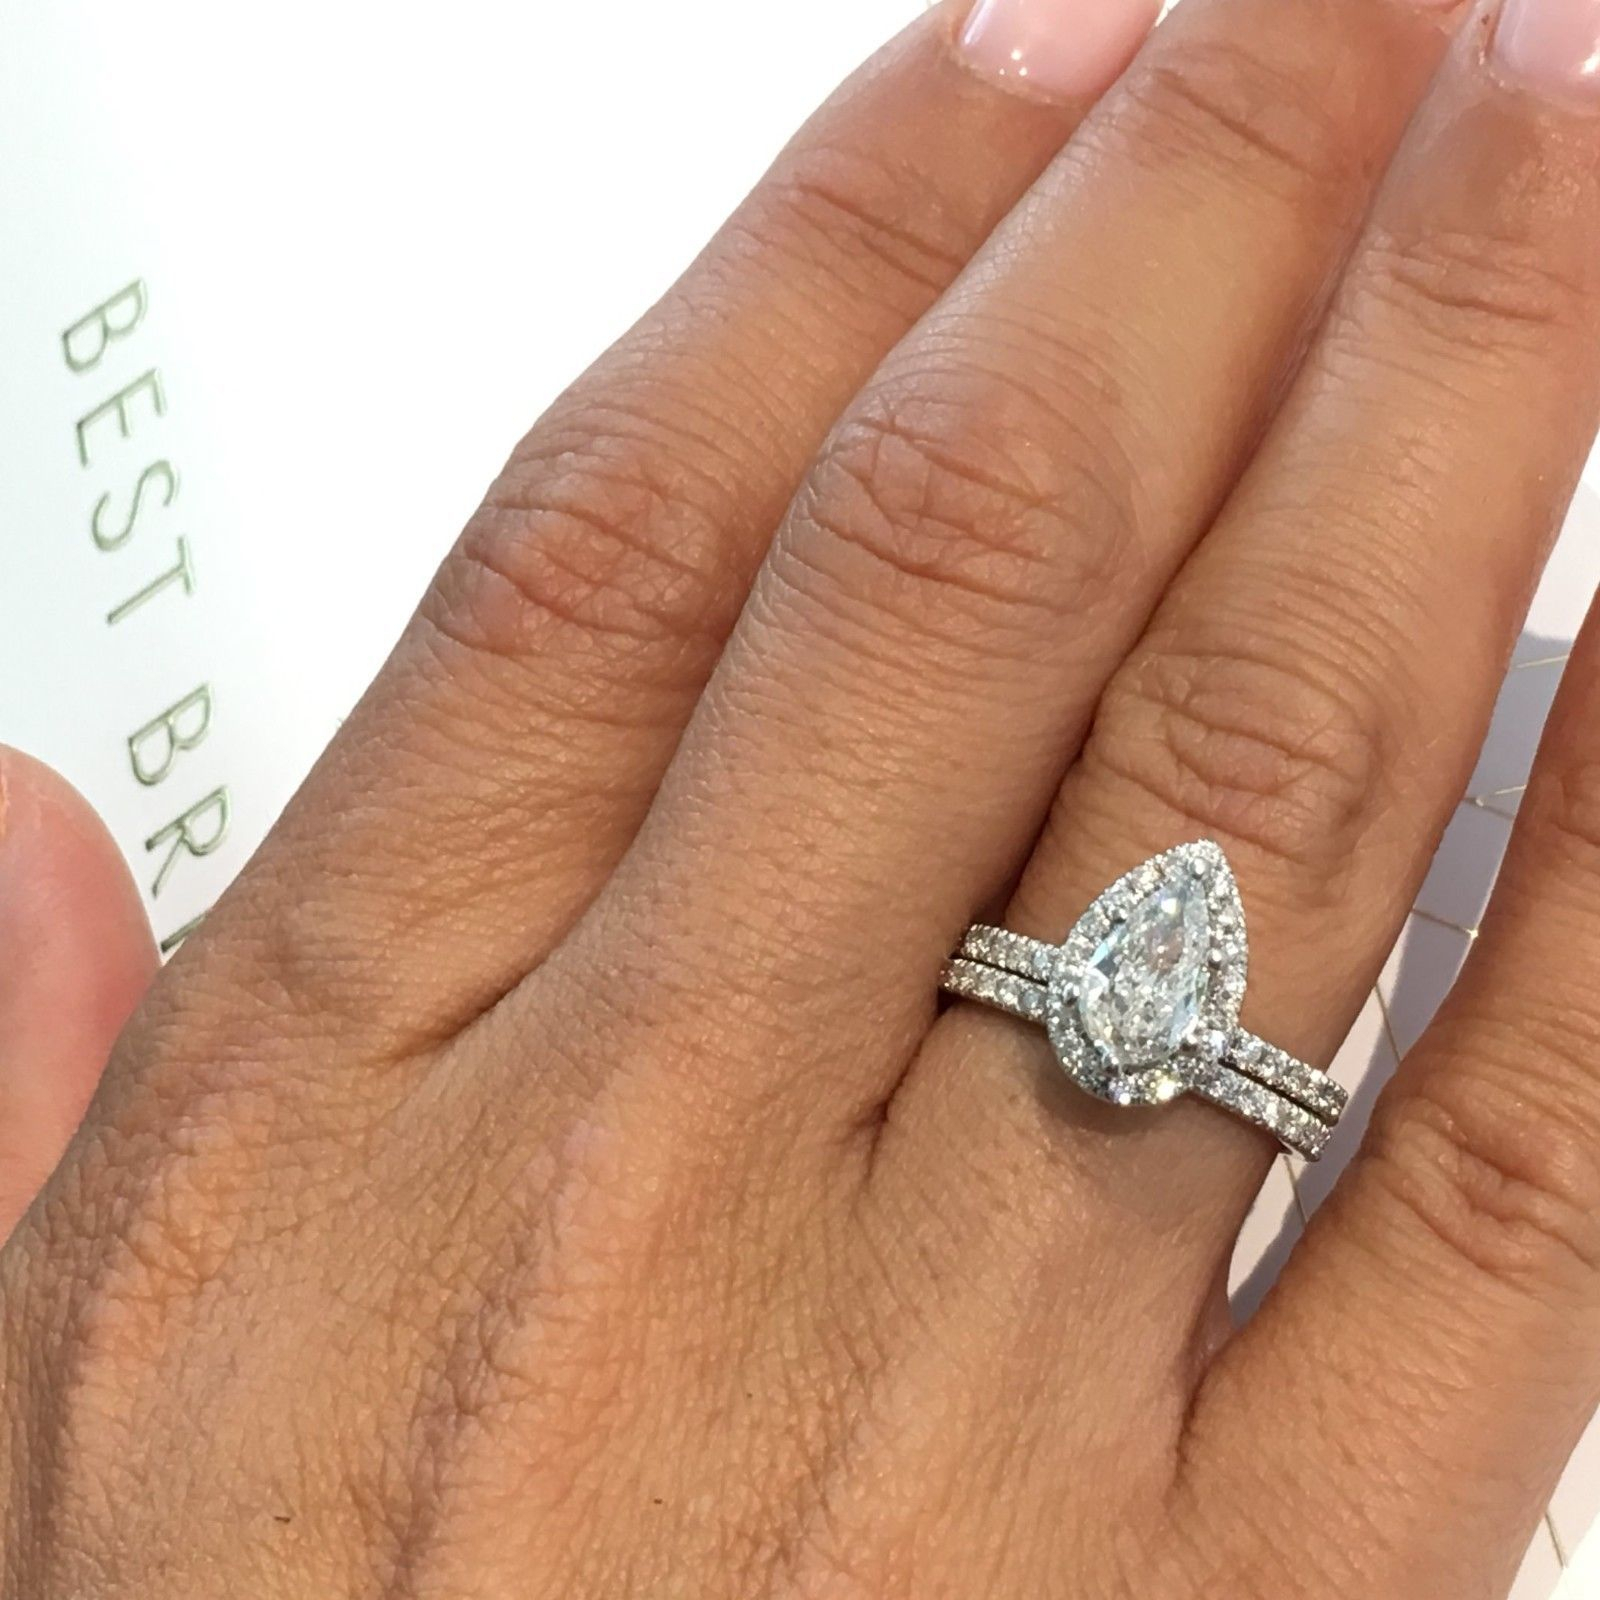 Details About 14K White Gold Diamond Engagement Wedding Ring Set  (View 10 of 25)